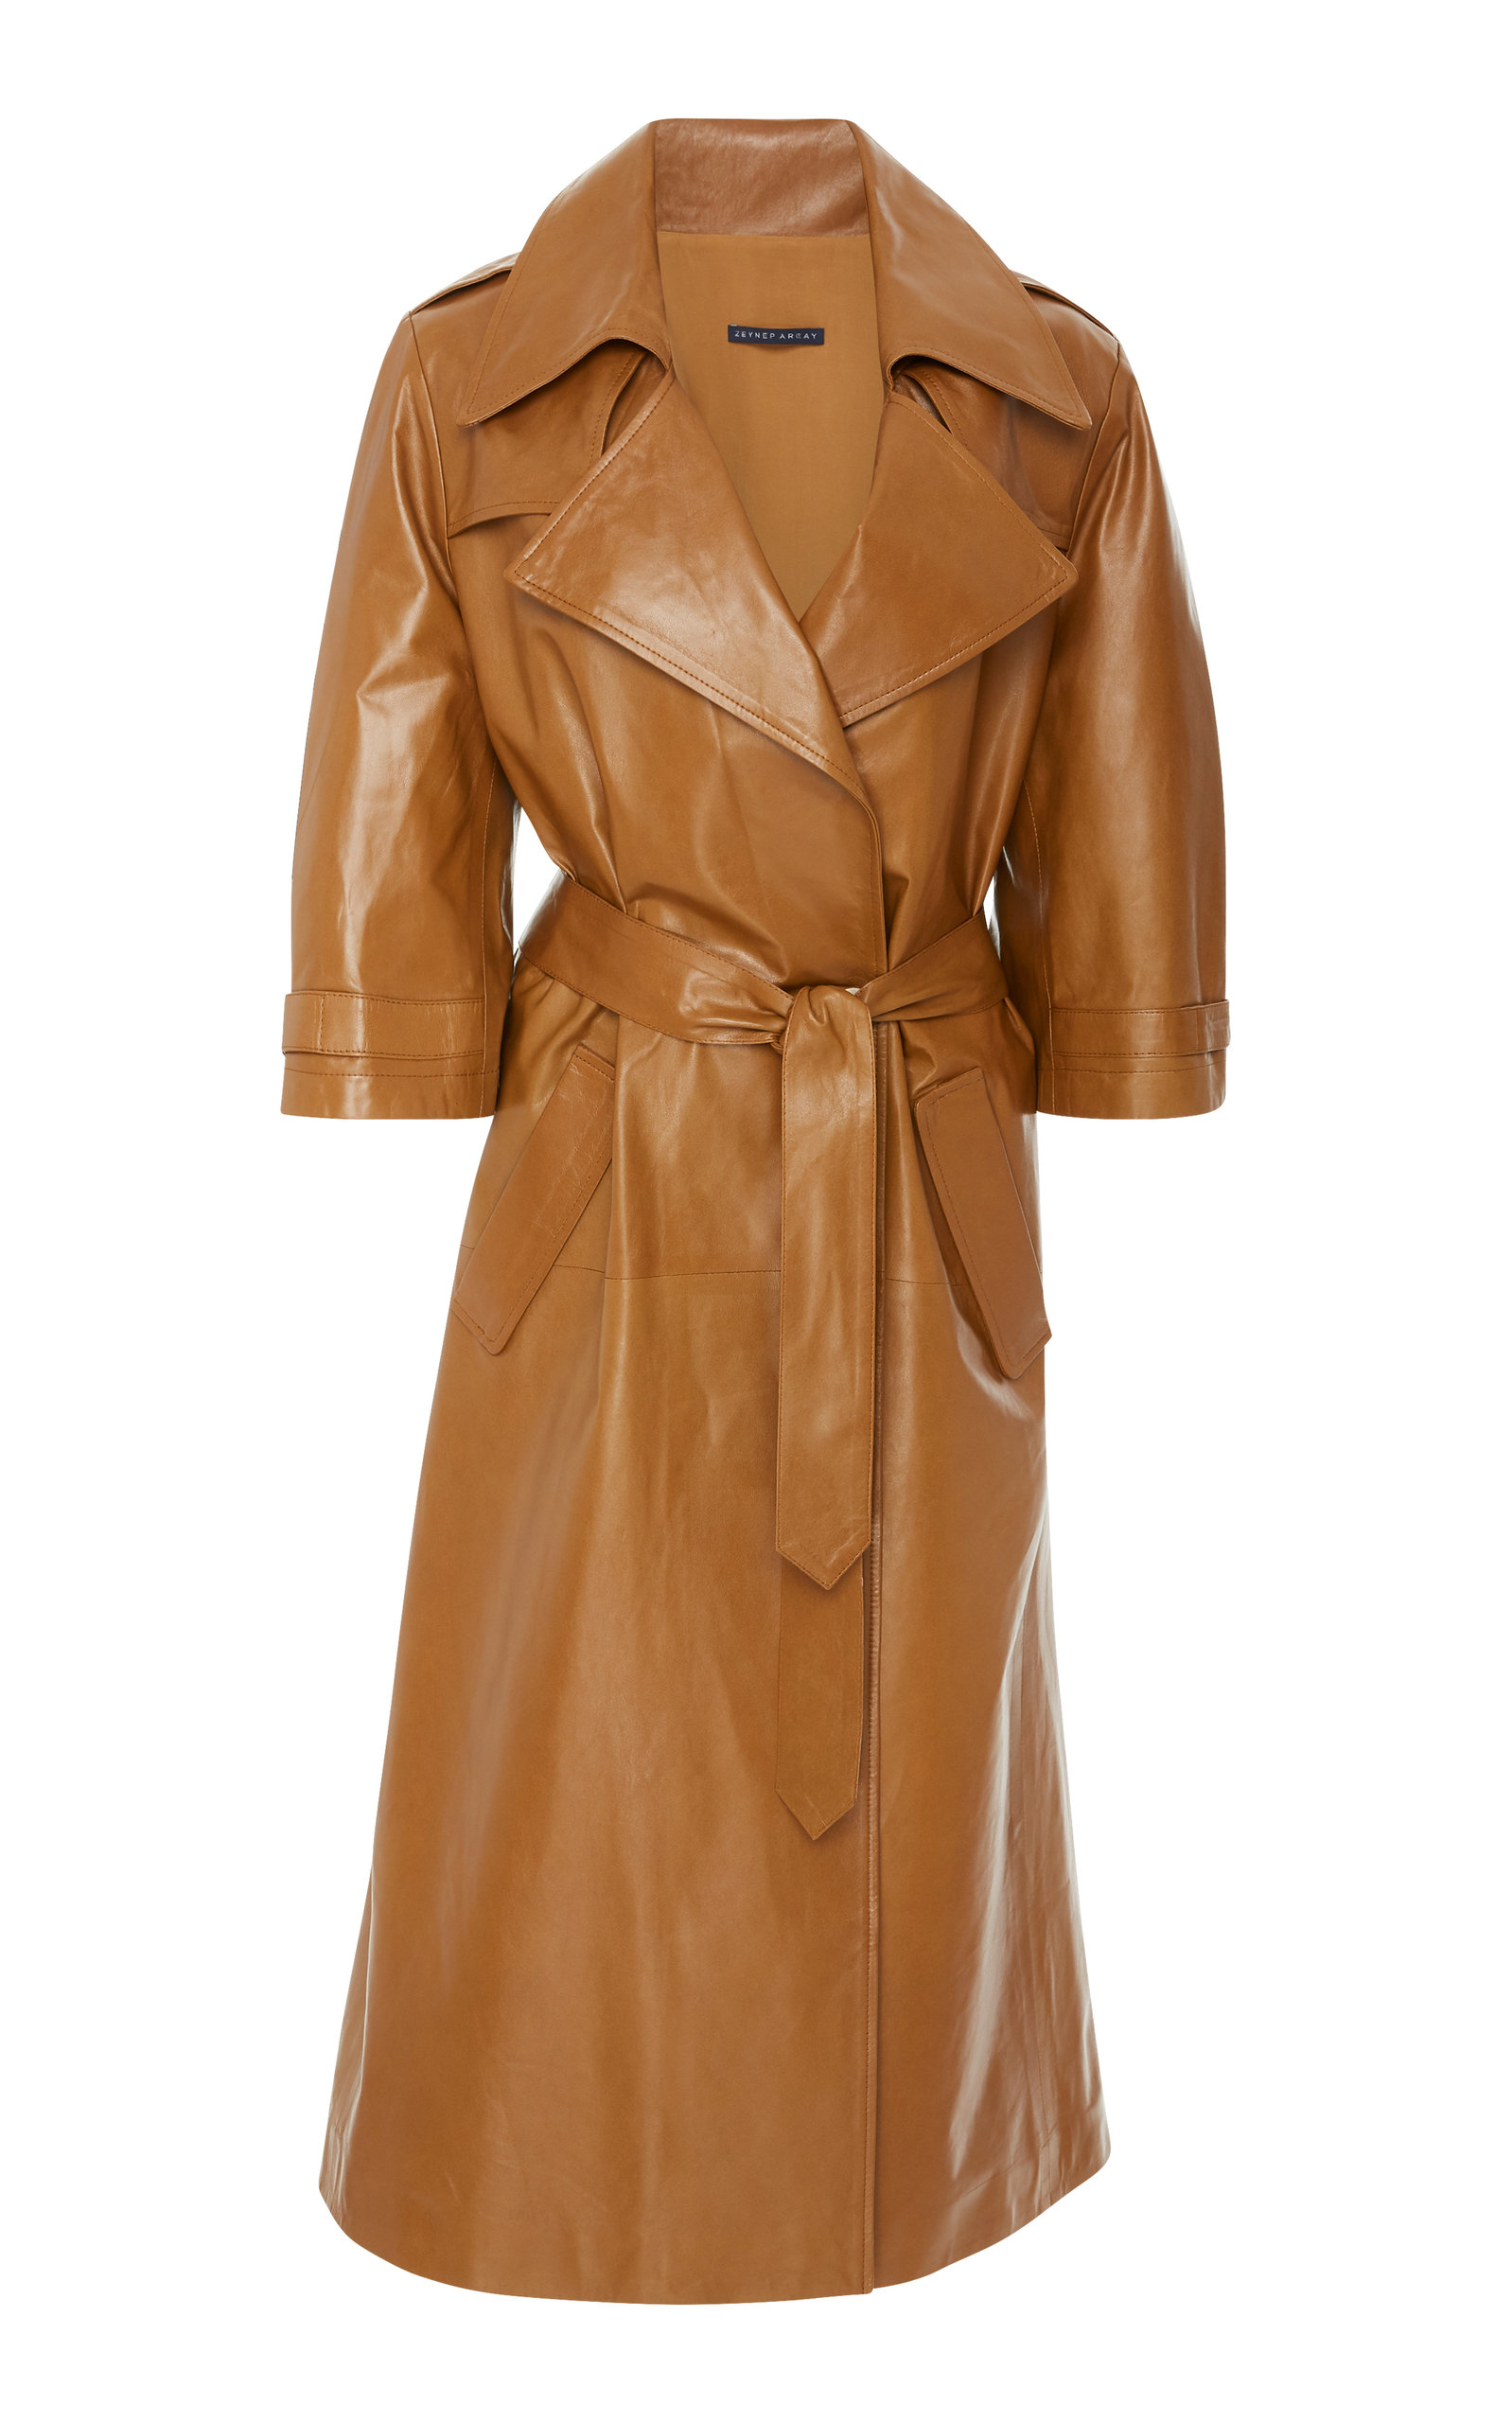 OVERSIZED LEATHER TRENCH COAT